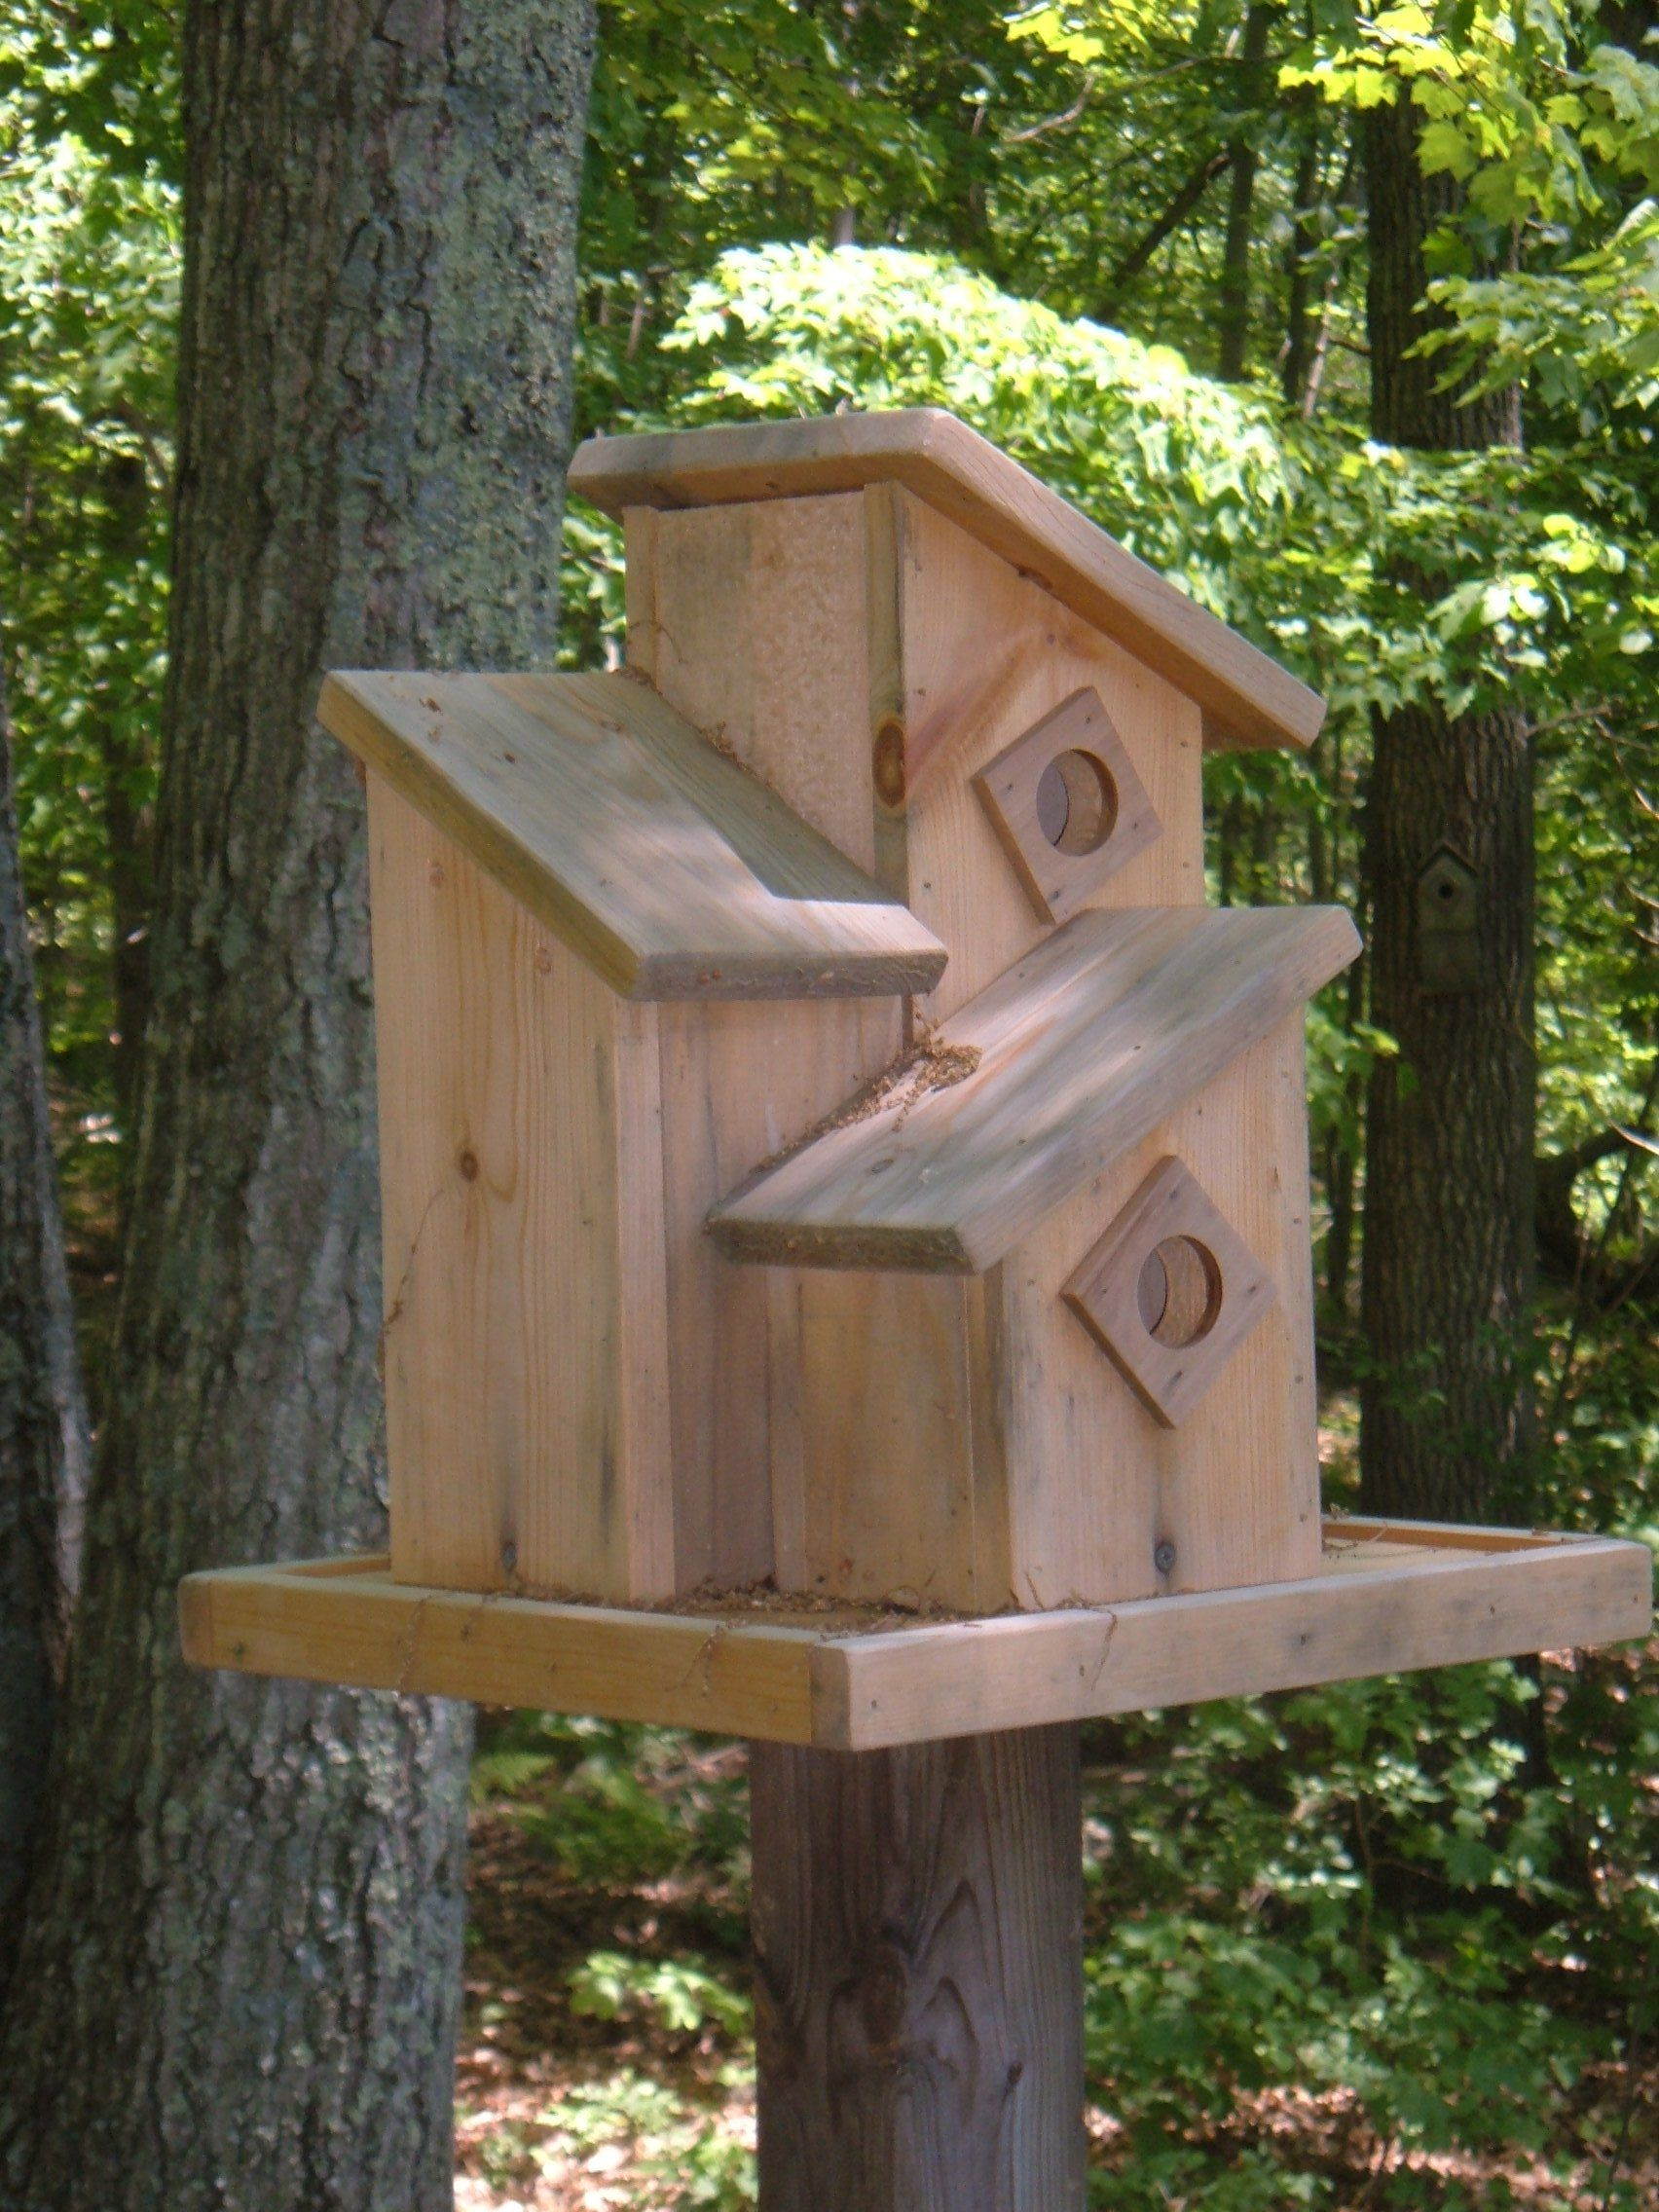 Making Wooden Birdhouses Birdhouse Ideas Plans and